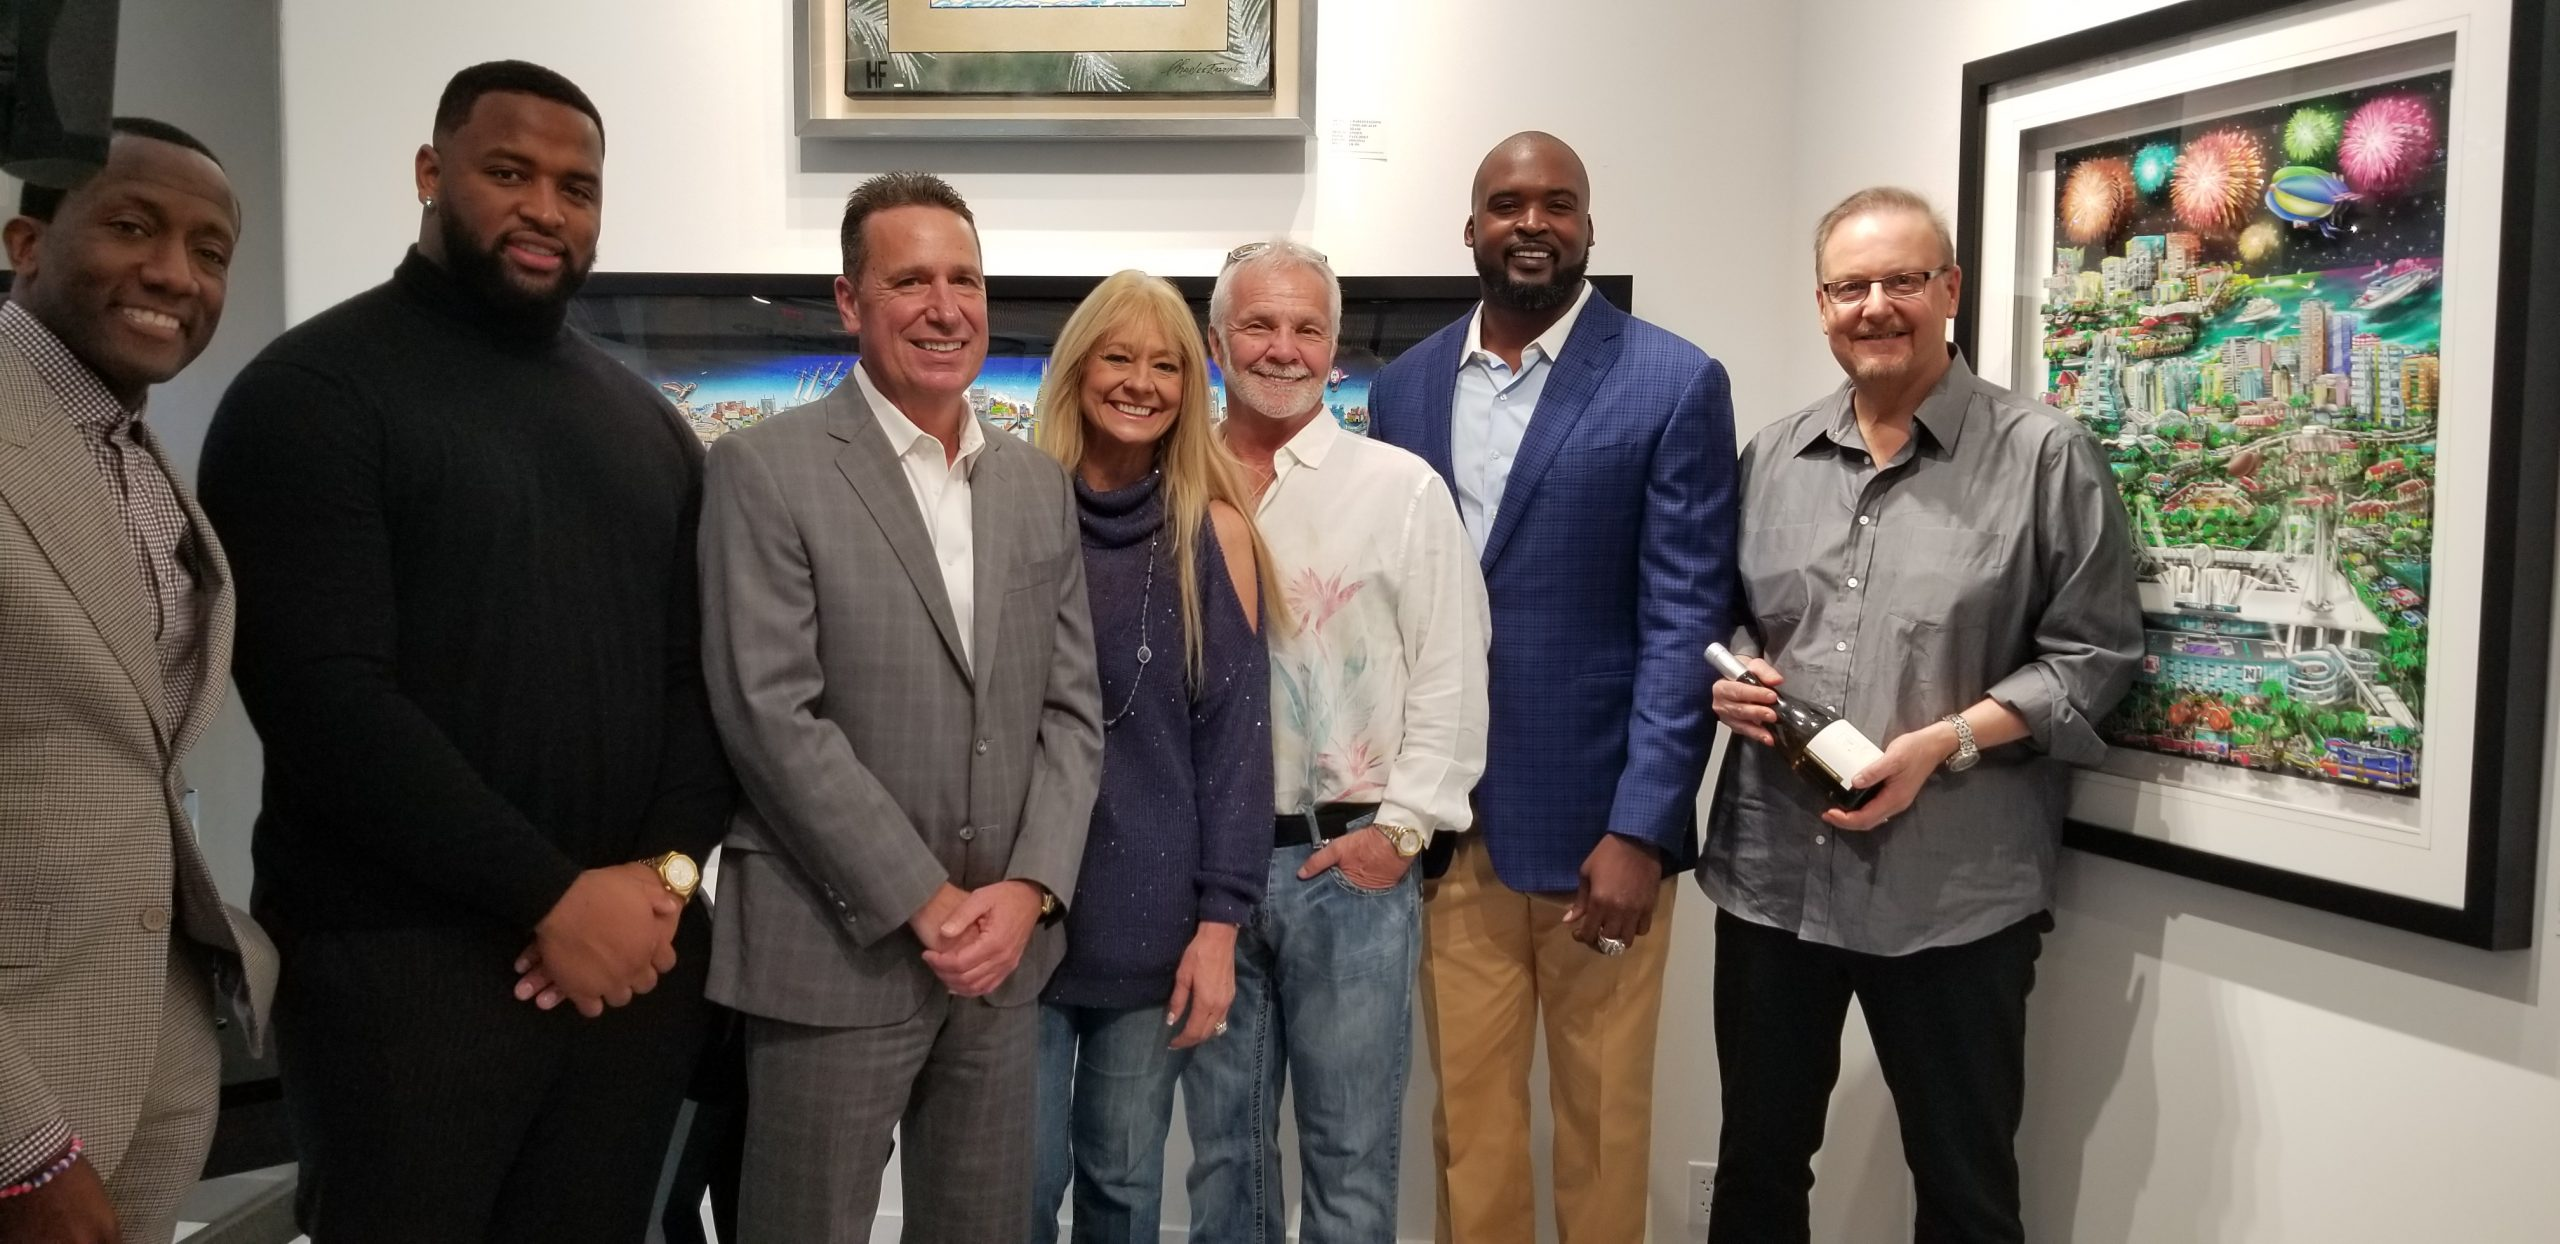 Super Bowl art unveiling at Wentworth Gallery in the Hard Rock Hotel & Casino in Hollywood, FL. Attendees included (from left to right): Donovan Campbell, Miami Dolphin Davon Godchaux, President of the Hard Rock Hotel & Casino Bo Guidry, Winterfest CEO and President Lisa Scott-Founds, Bravo Television Personality Captain Lee, Former NY Giant Mathias Kiwanuka, and Charles Fazzino